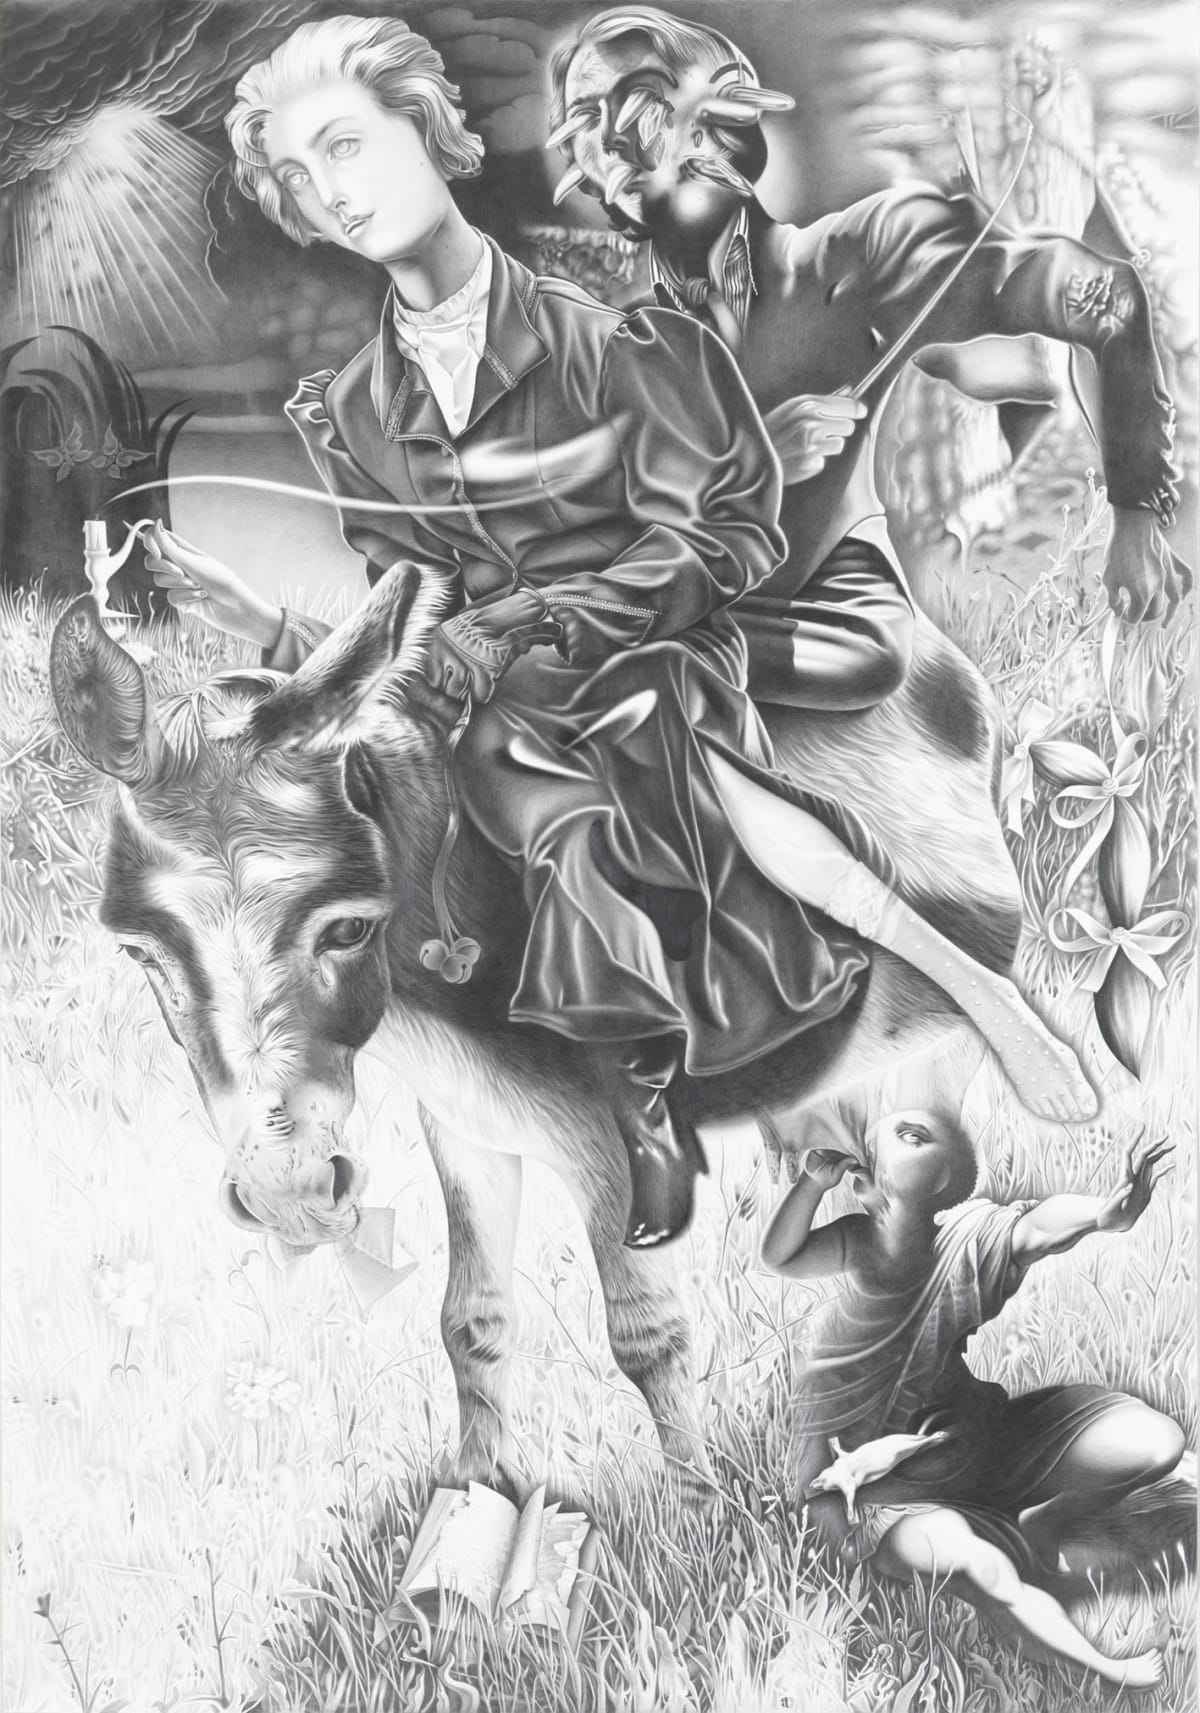 Dennis Scholl, 'Dunkelheit von Charakter und Schicksal (Darkness of character and destiny)'. 2011. Pencil on paper, 214 x 150 cm.